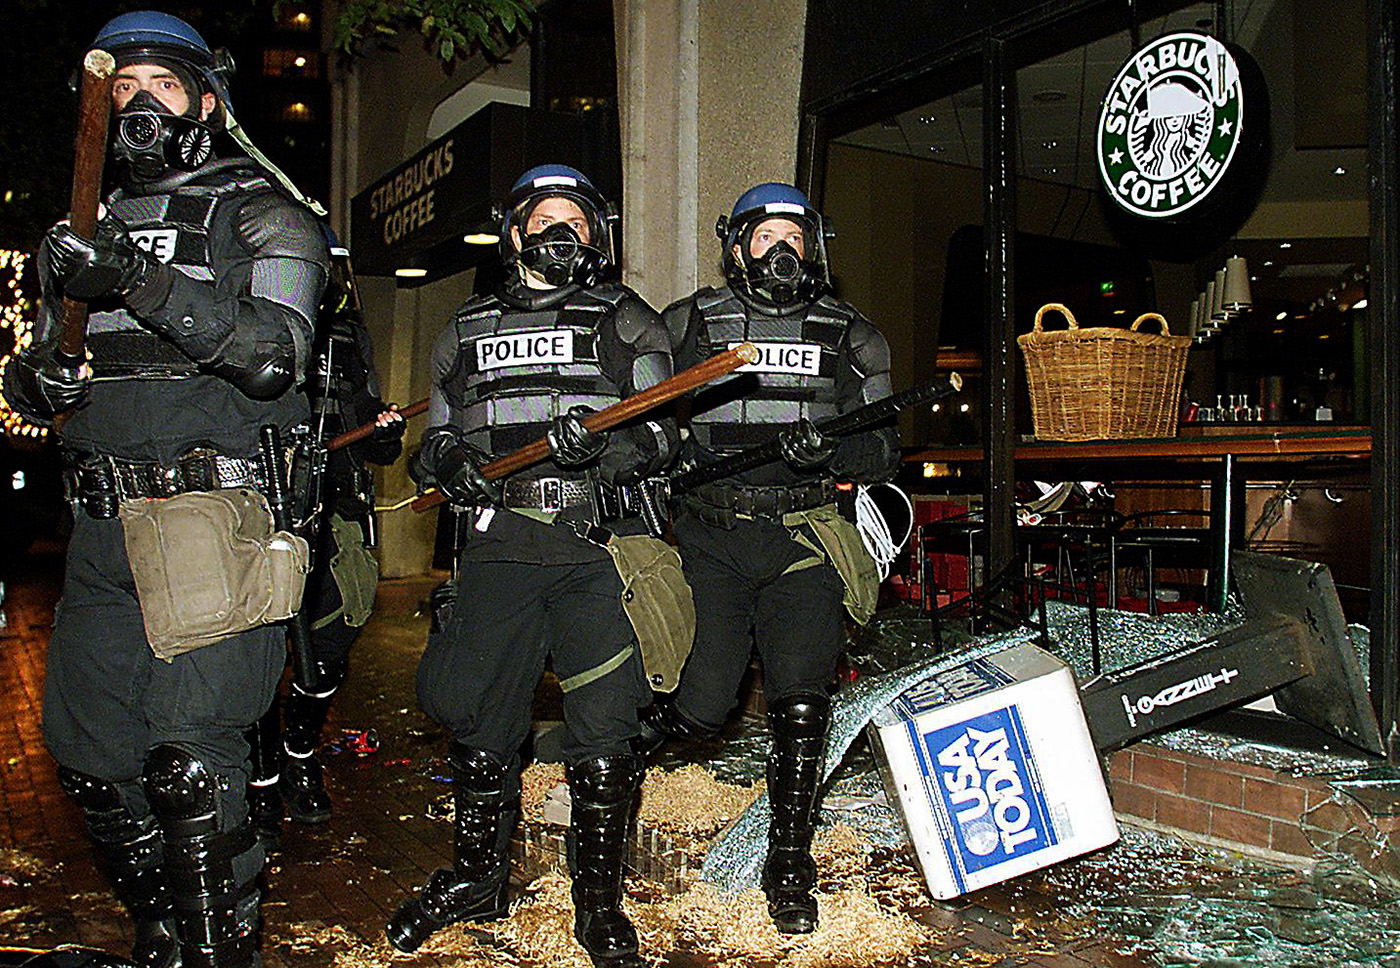 Seattle riot police marching past a damaged Starbucks during demonstrations against the World Trade Organization, 1999. (Credit: Mike Nelson/AFP/Getty Images)